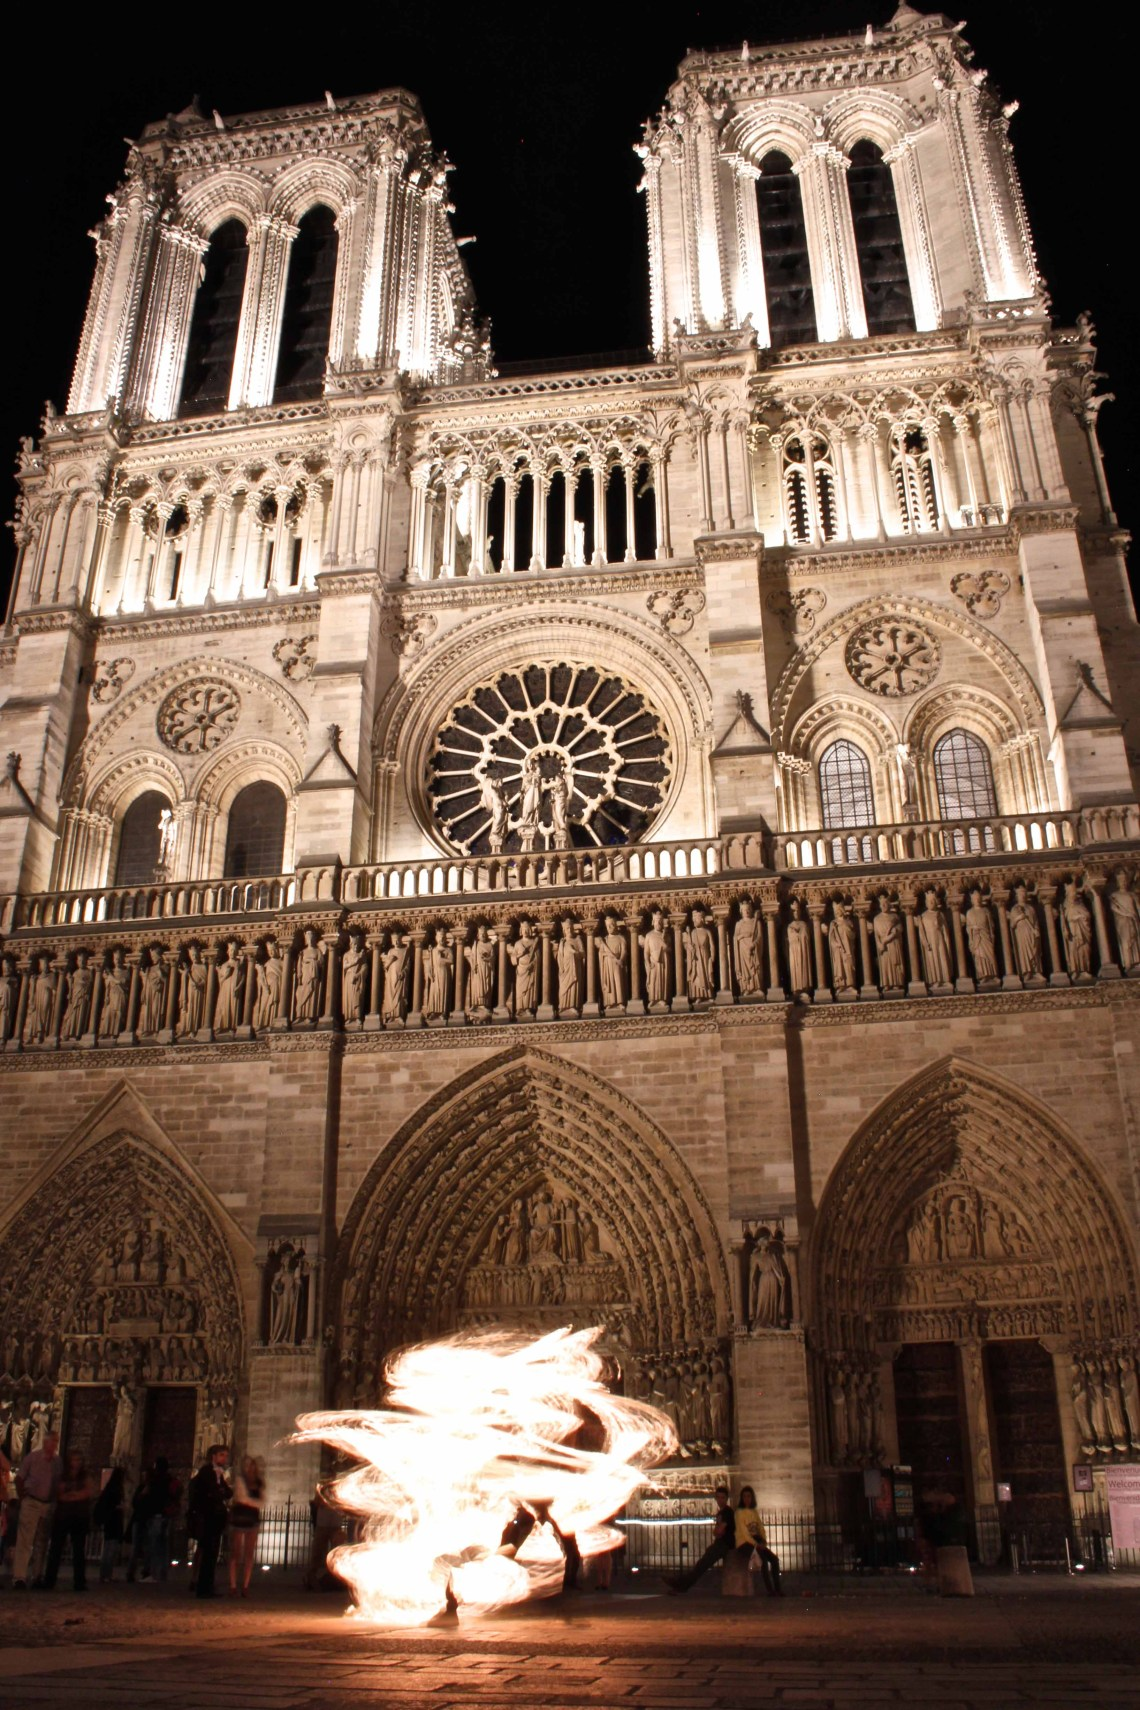 Notre Dame de Paris, Fire Dance, Fire Dancer, Paris, France, photo challenge